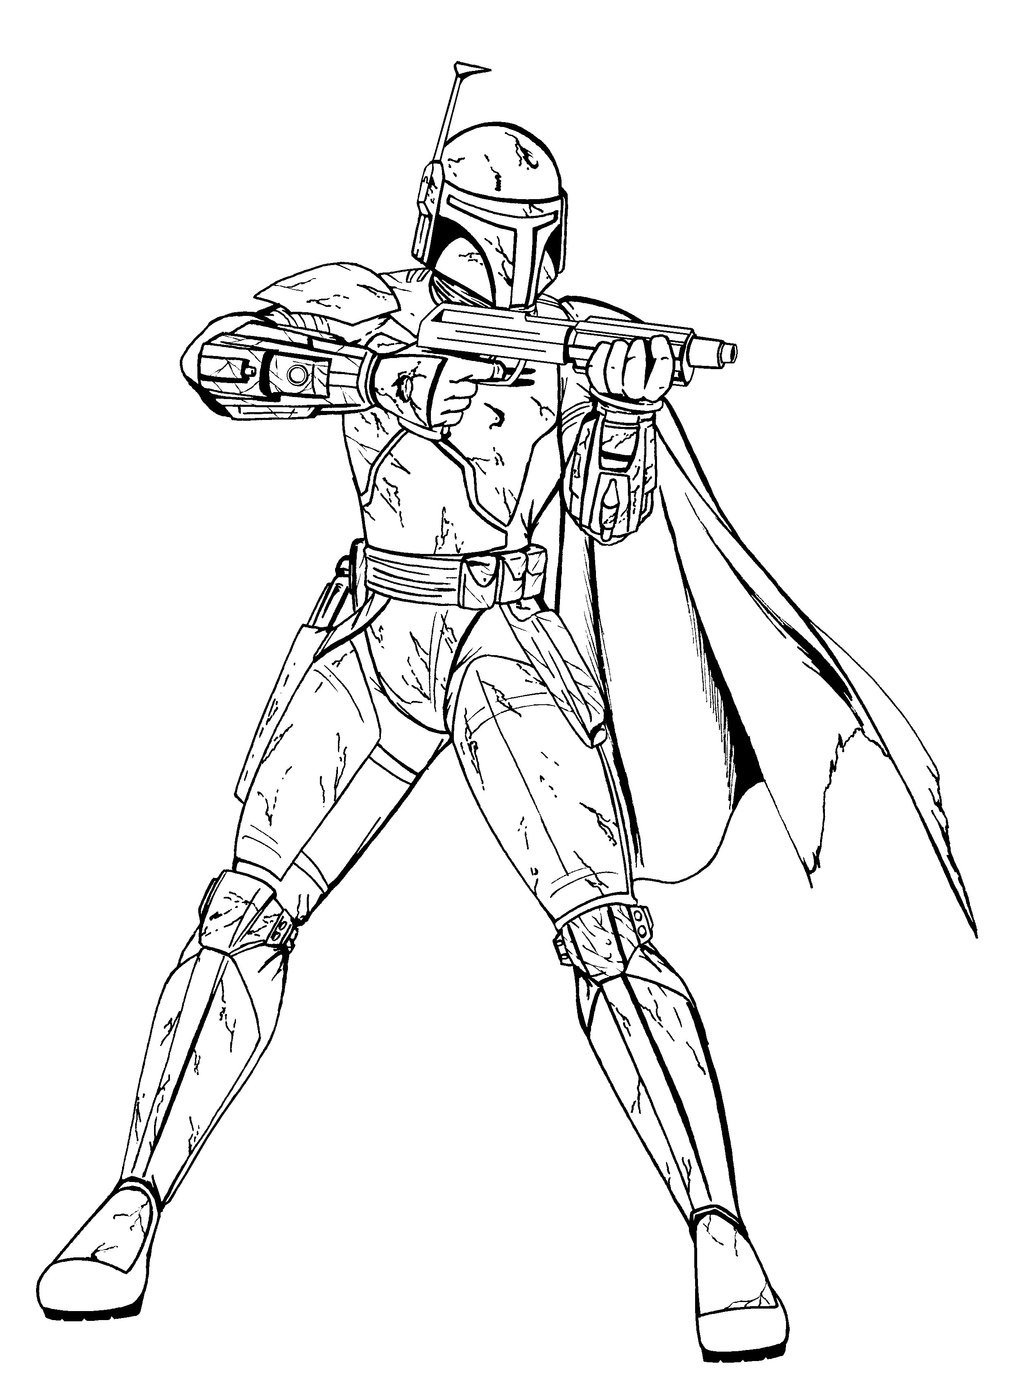 star wars coloring pages to print star wars printable coloring pages hubpages to print star coloring pages wars